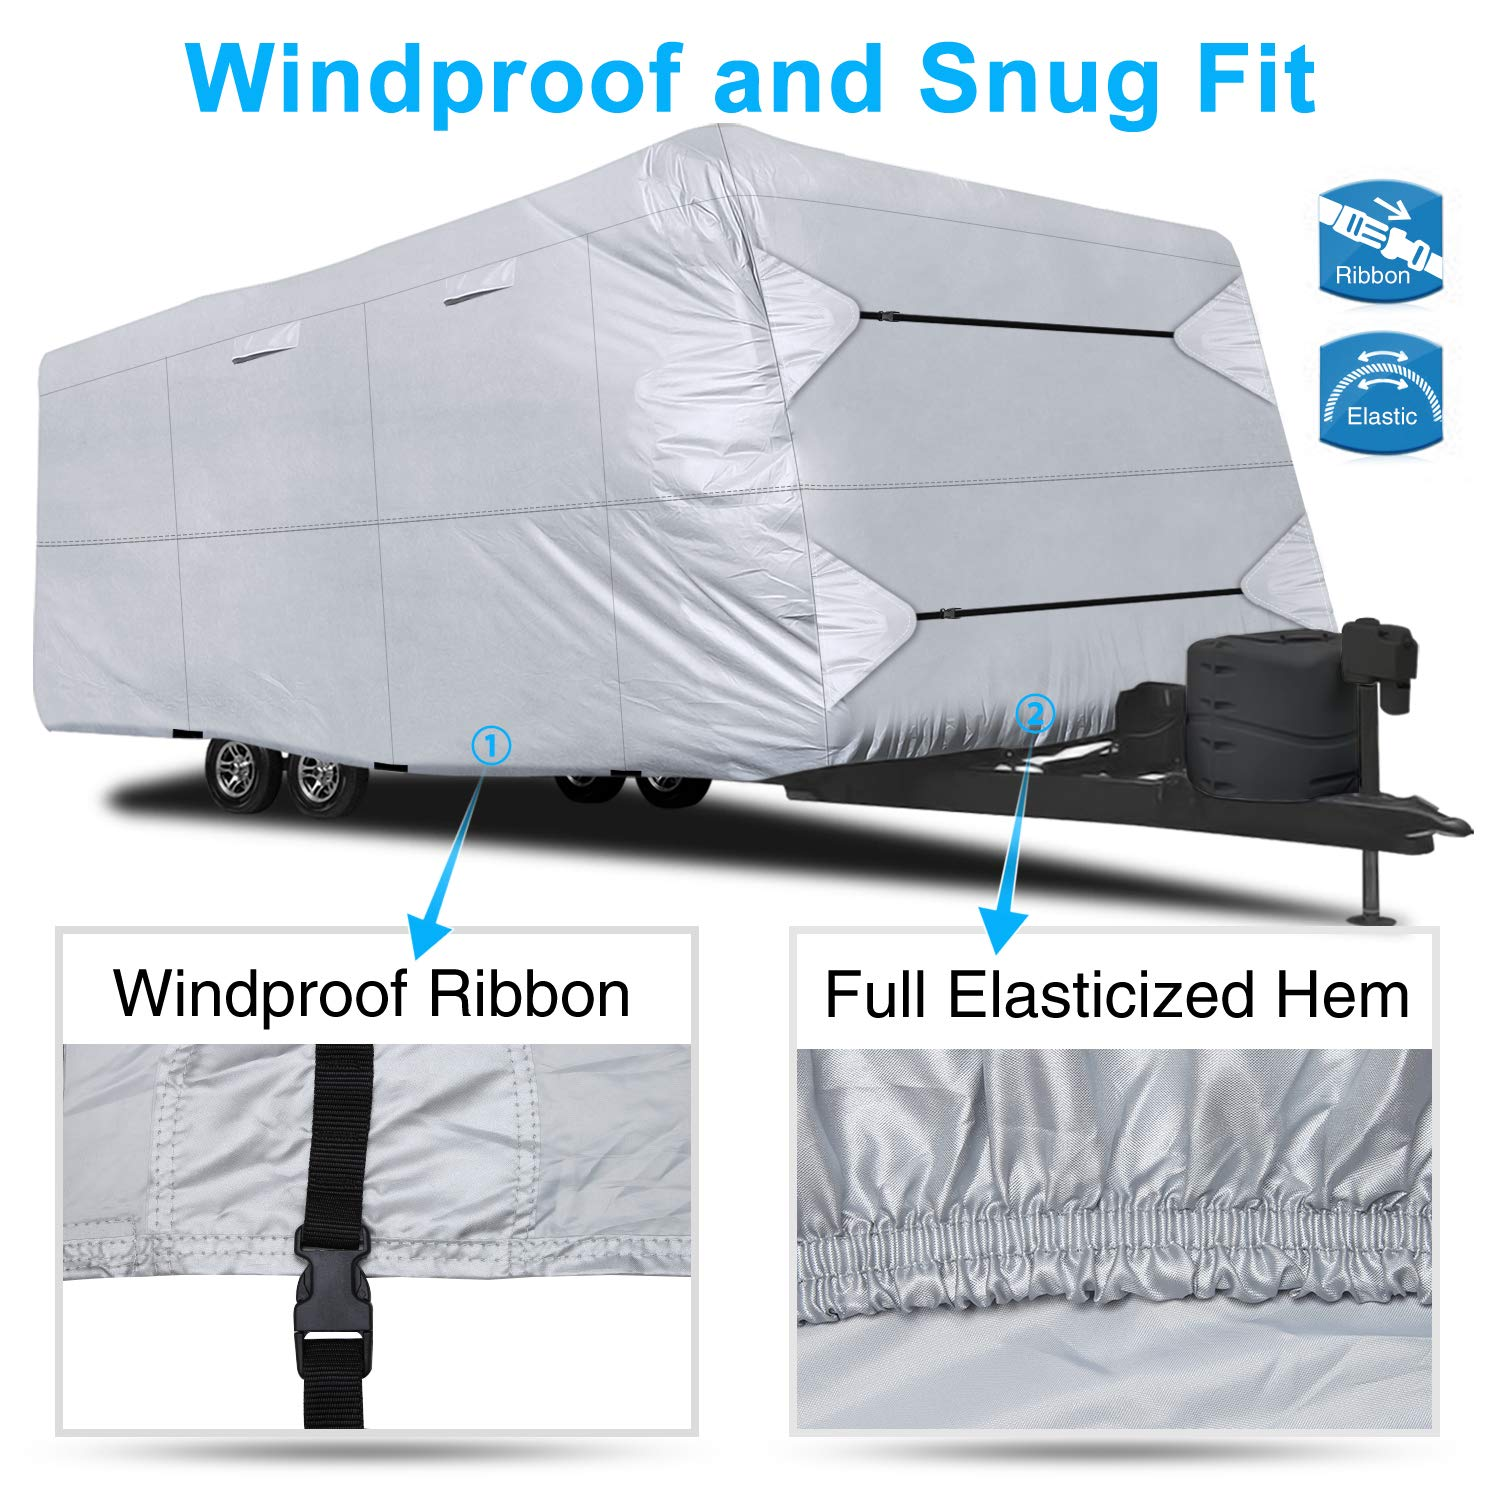 Fits 261-286 RVs RVMasking Durable /& Lightweight Travel Trailer RV Cover Breathable Waterproof Anti-UV Ripstop Camper Cover with Adhesive Repair Patch